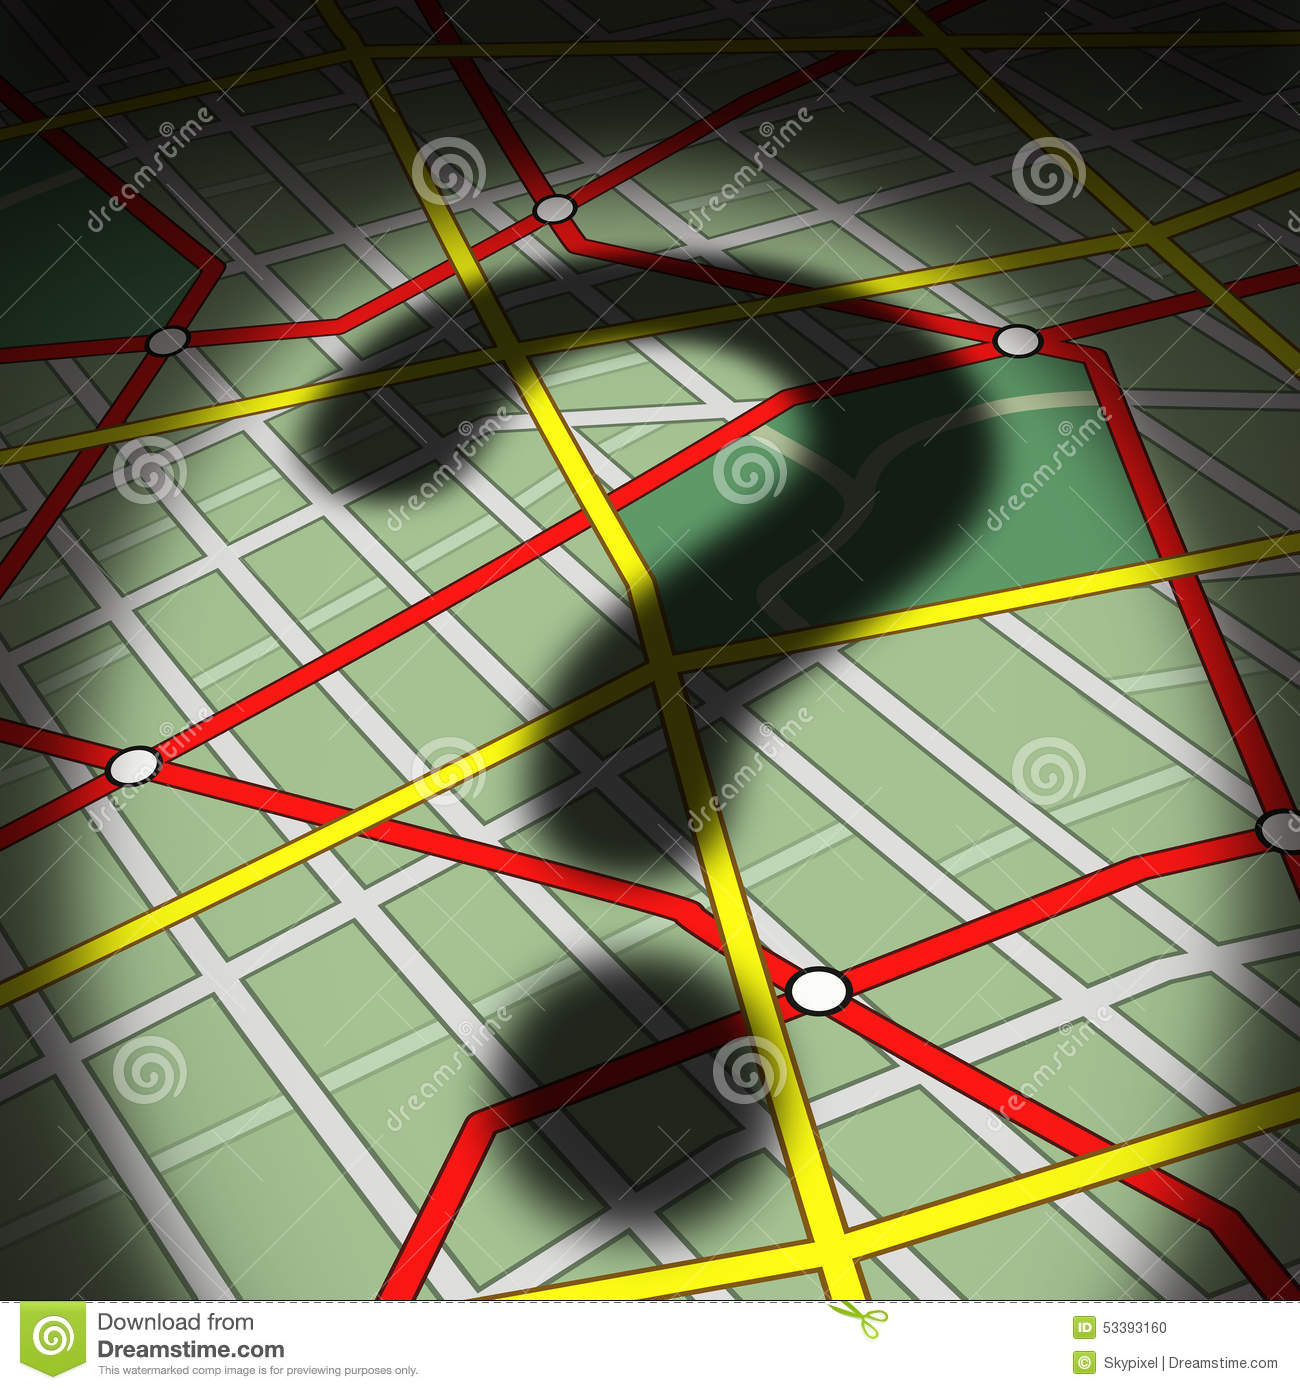 map question stock illustration illustration of life 53393160map questions concept as a city street topographic diagram with a cast shadow of a question mark as a business or life metaphor for direction uncertainty